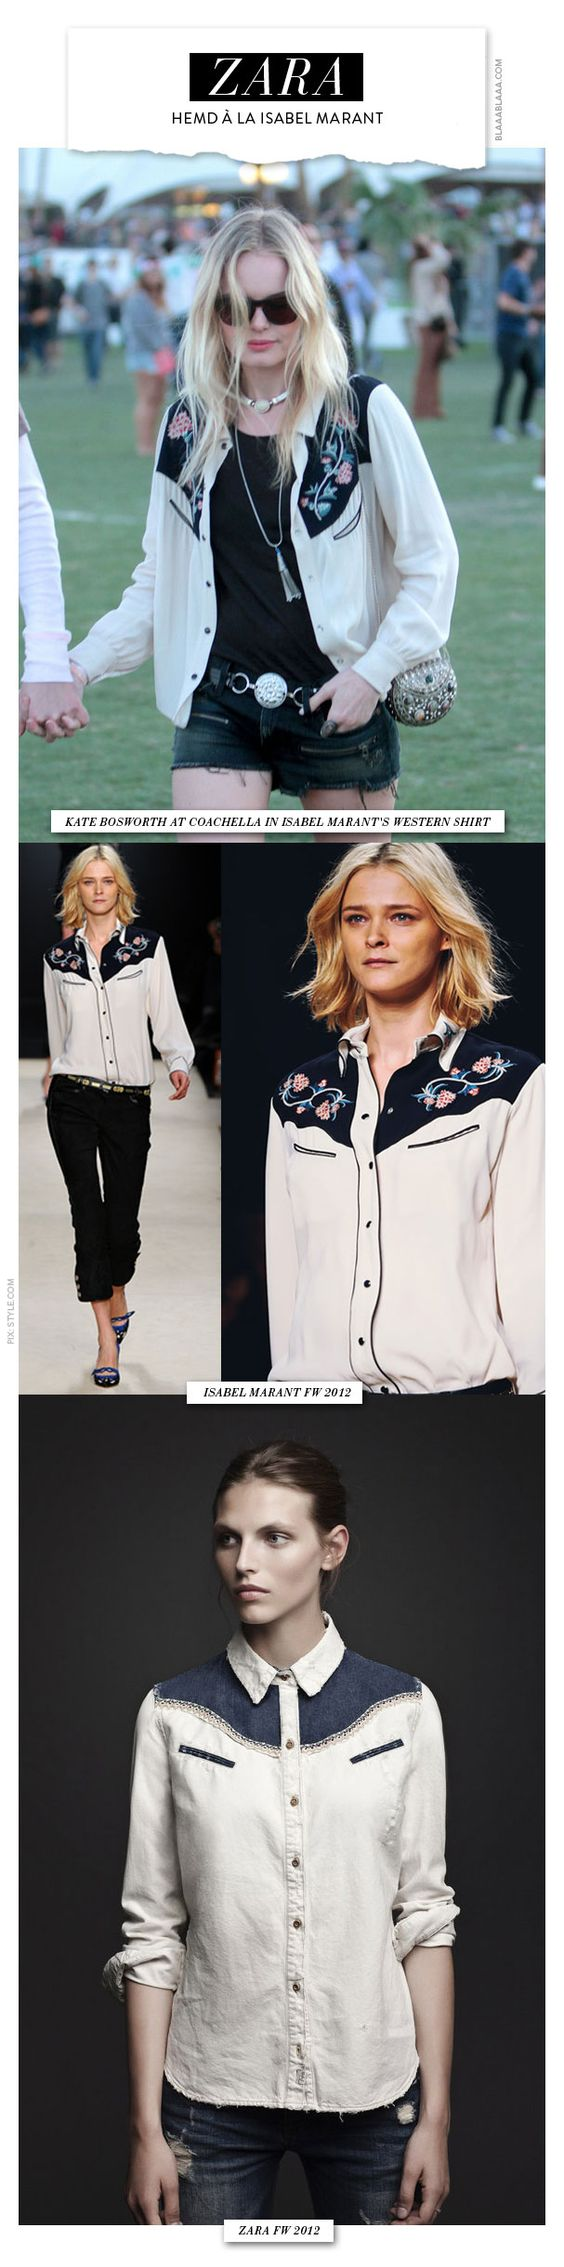 Zara copies Isabel Marant Must-have Western Shirt